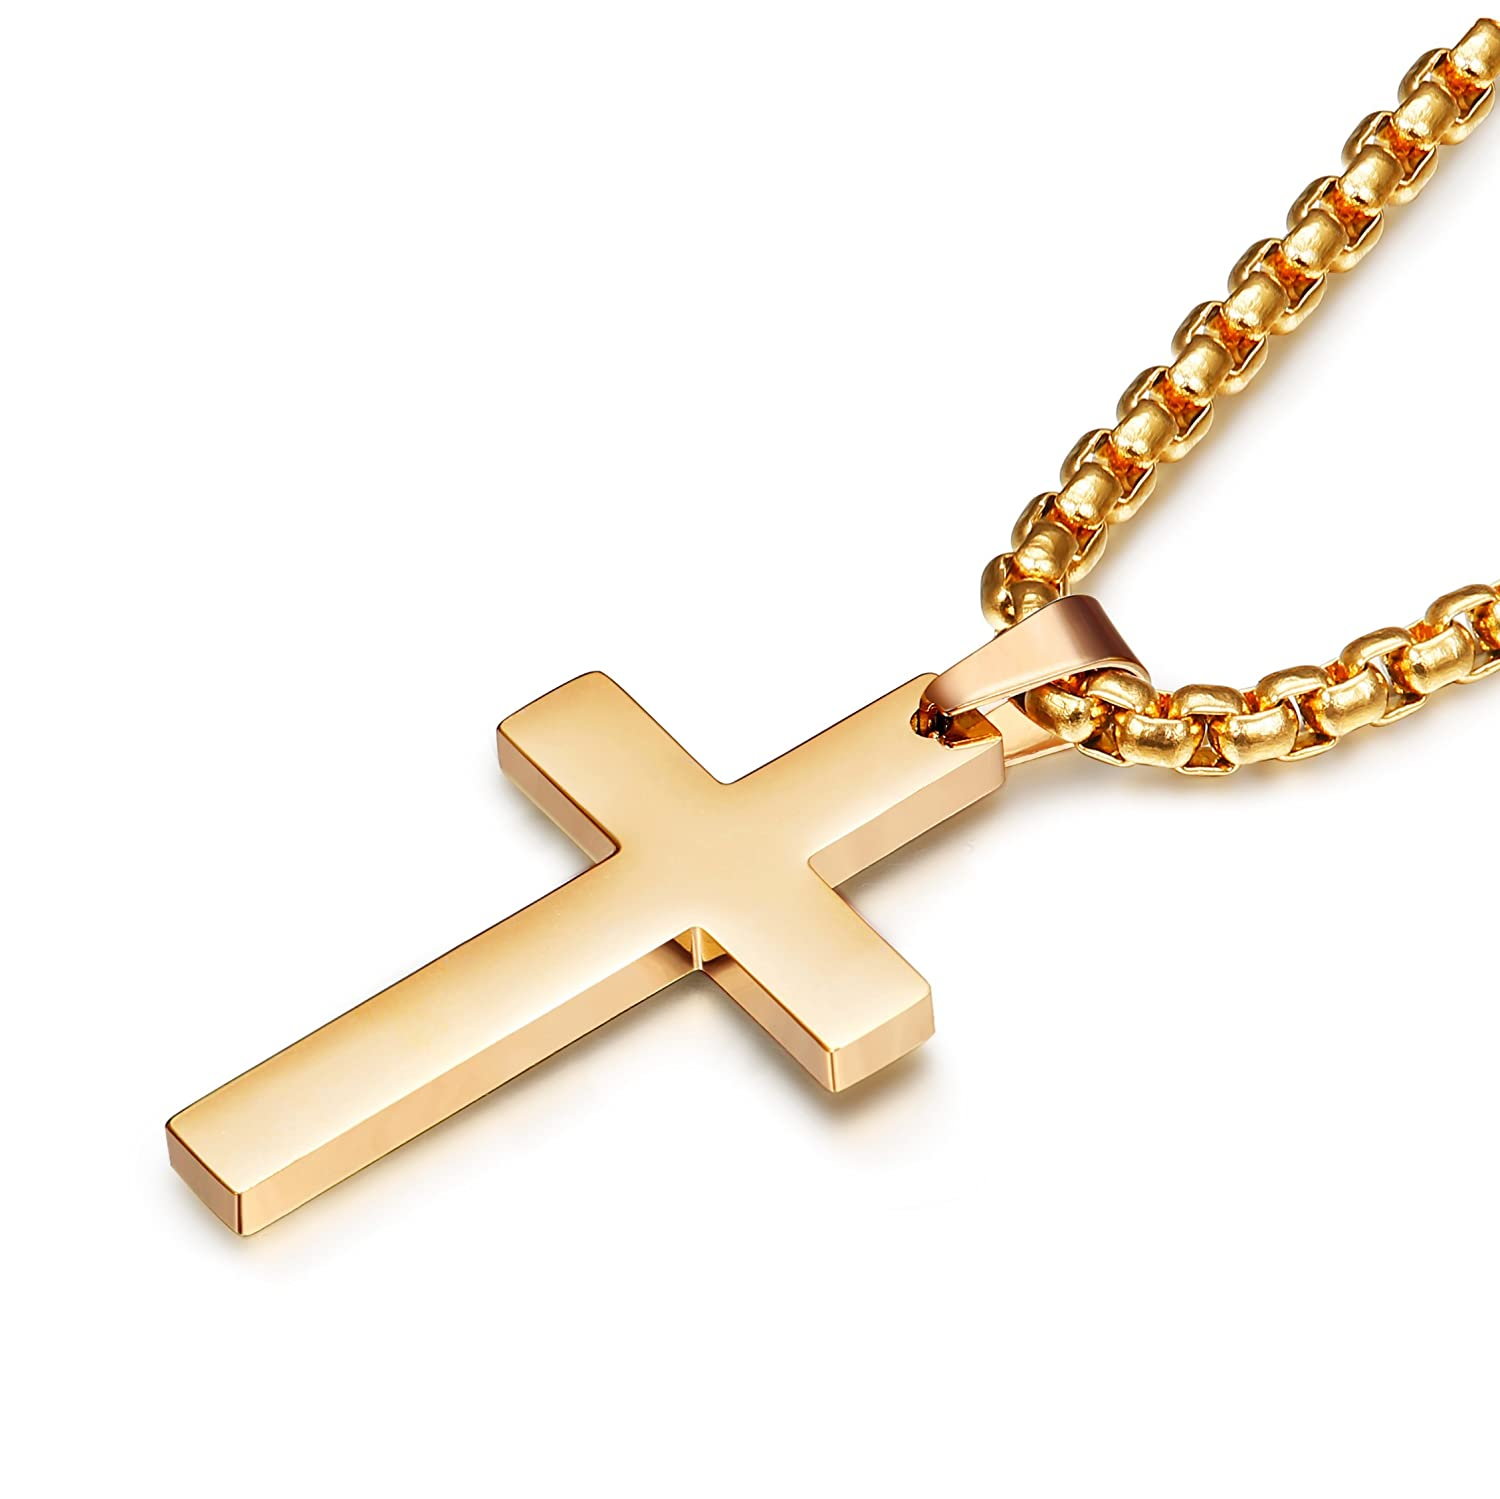 Jstyle Jewelry Stainless Steel Mens Cross Necklace Women Pendant Charms